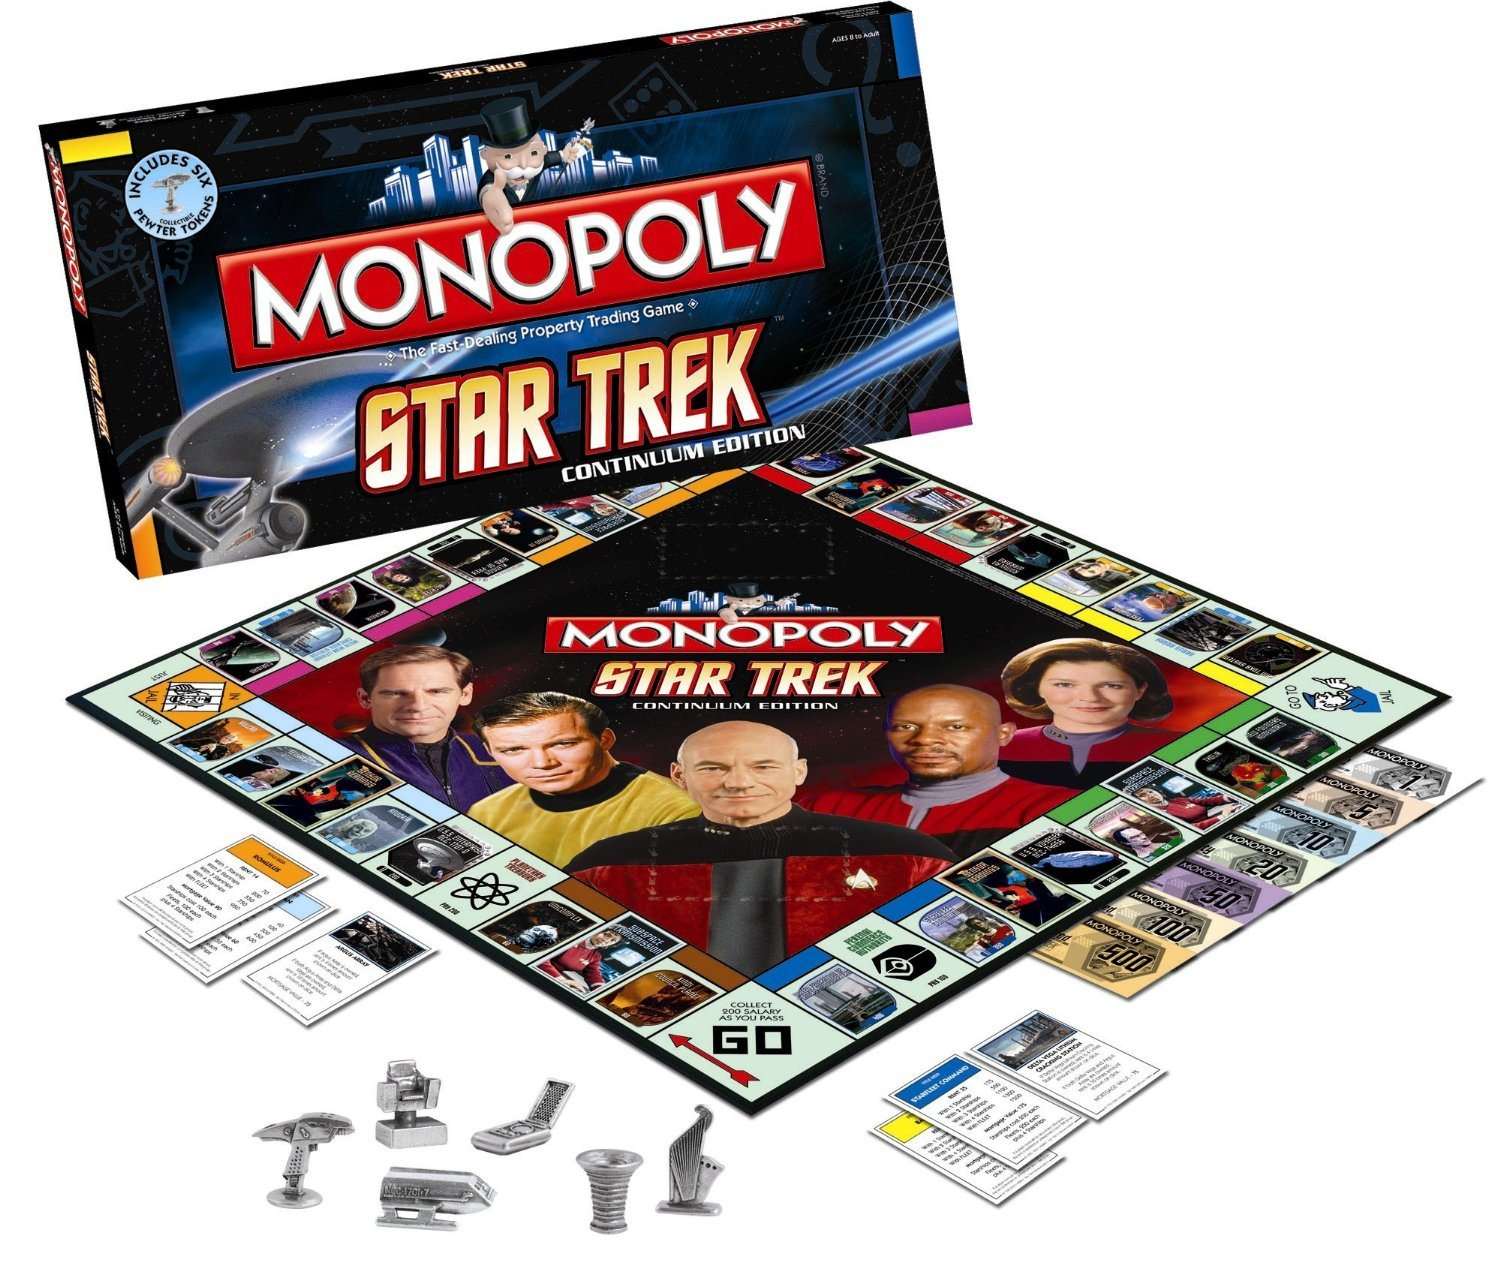 Best Sci Fi Gift of 2012 Star Trek Monoply Board Game For Sale